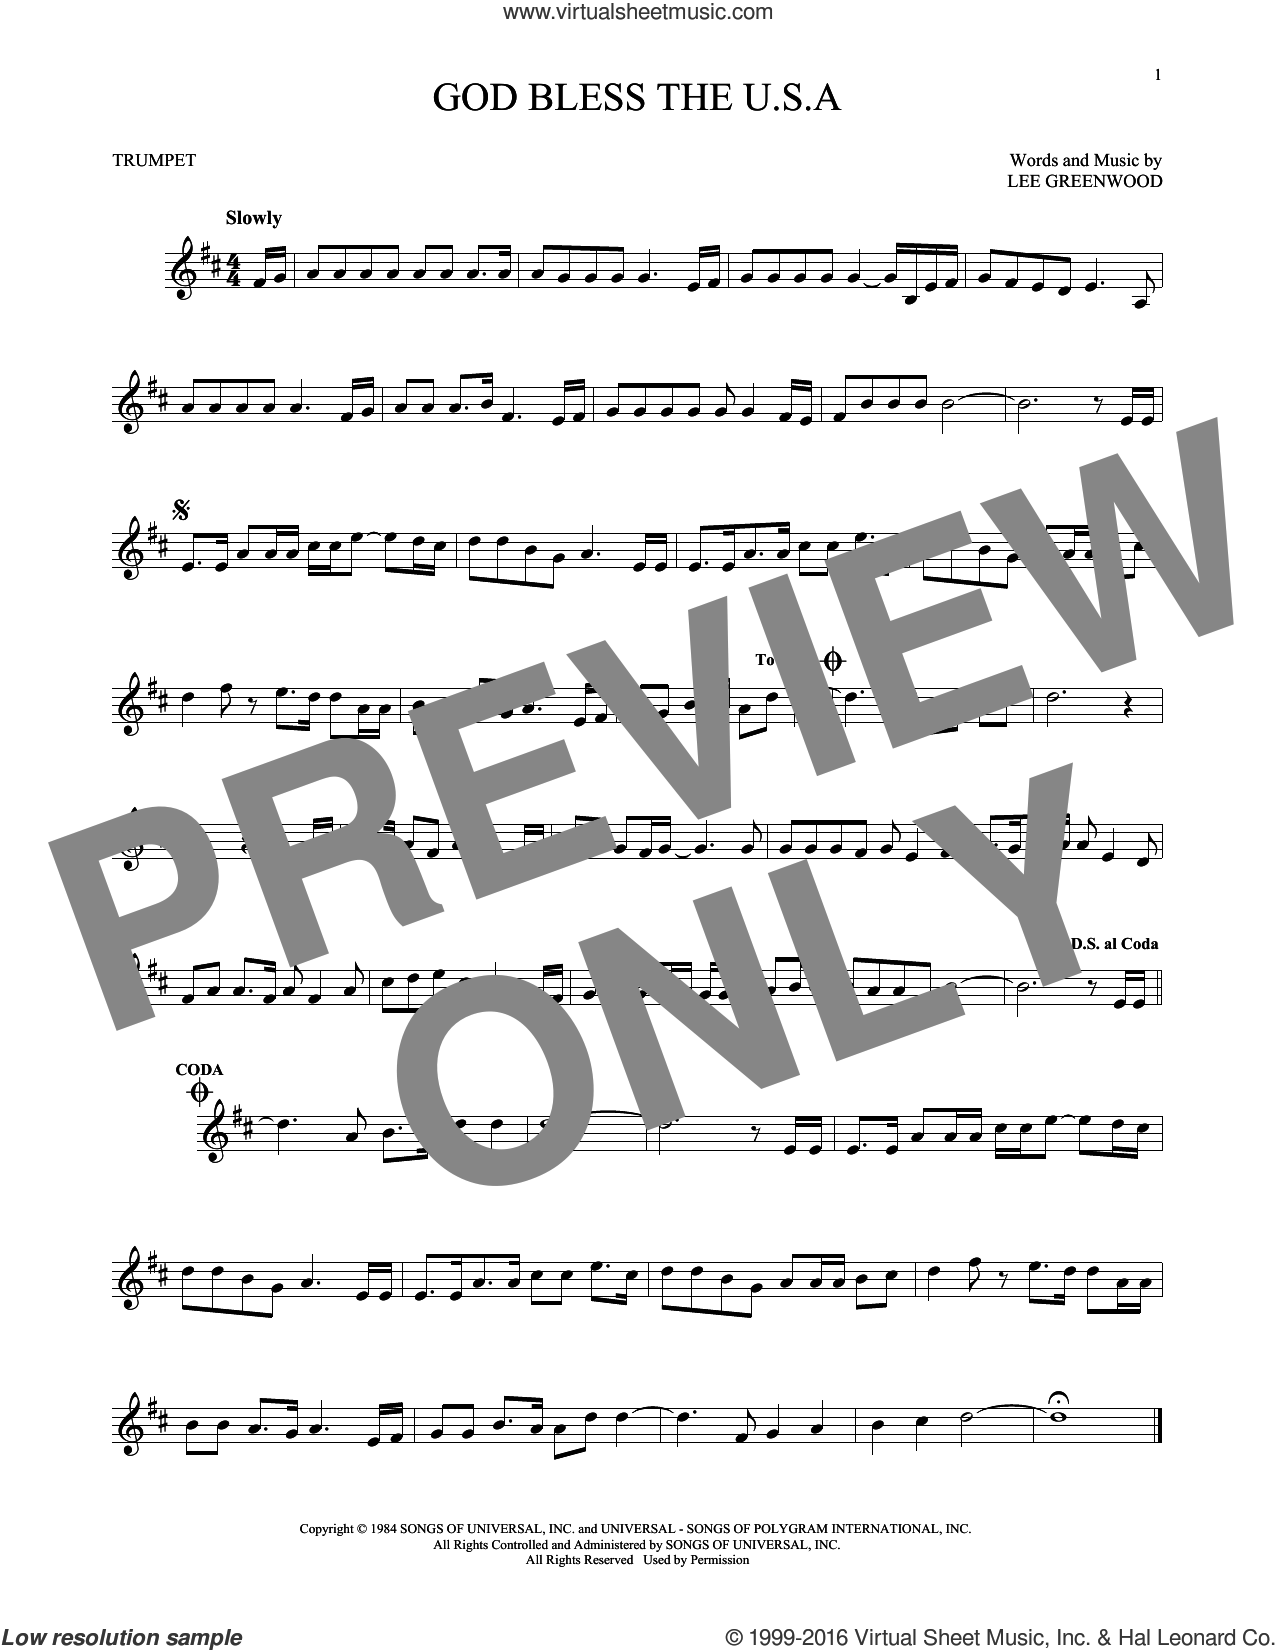 God Bless The U.S.A. sheet music for trumpet solo by Lee Greenwood, intermediate skill level